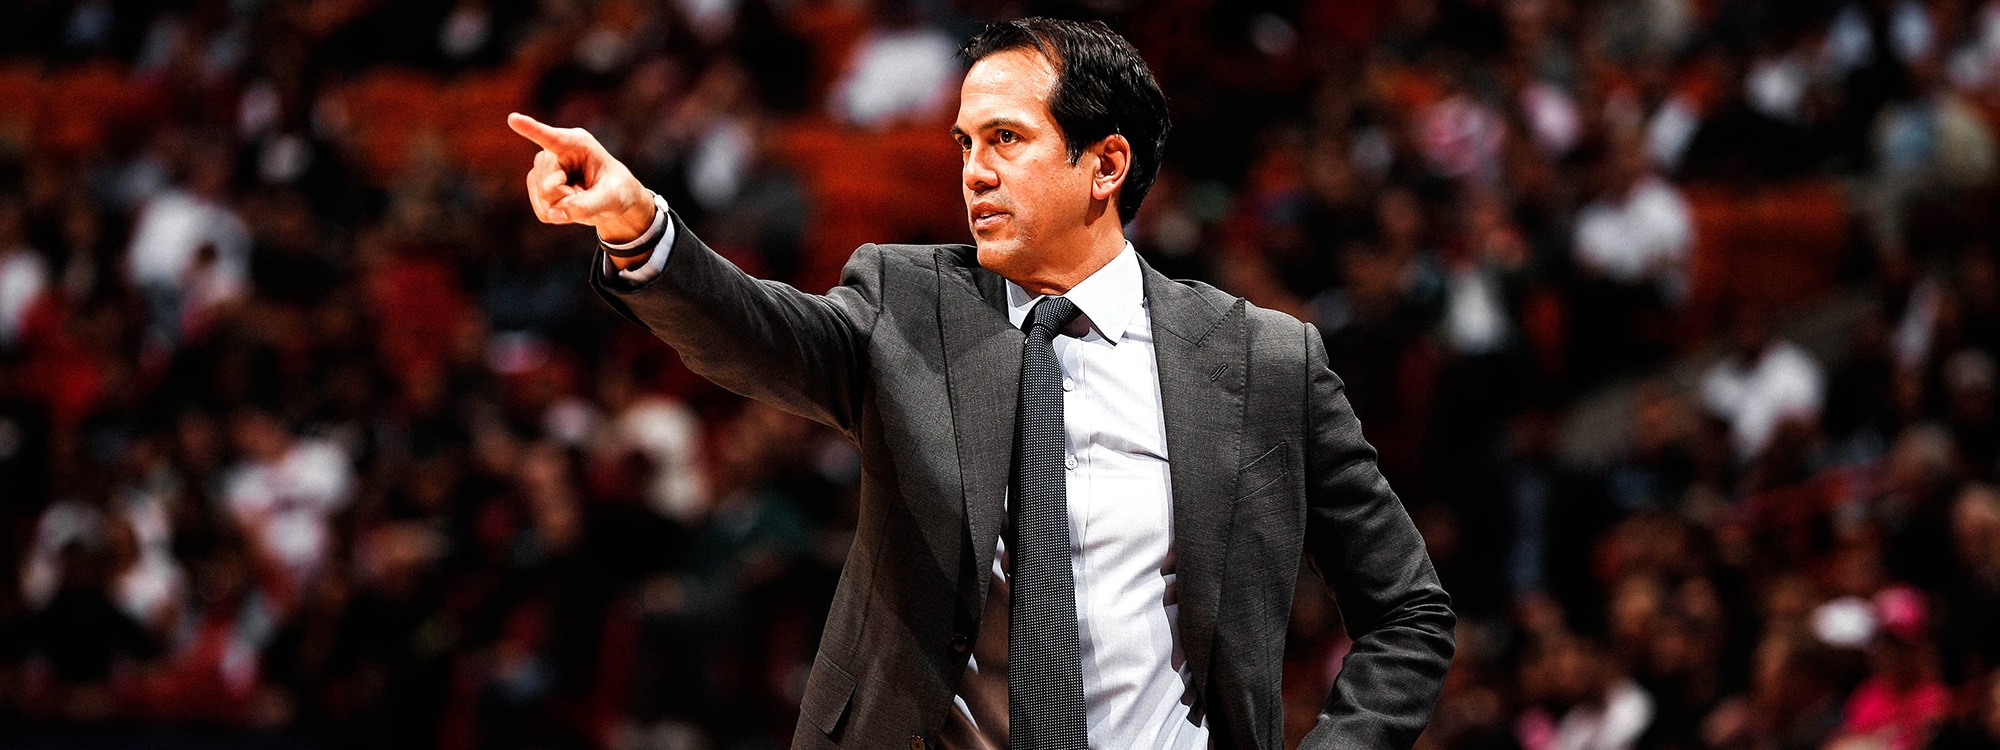 Erik Spoelstra We Do Want Our Team To Be Thinking Of Others Miami Heat